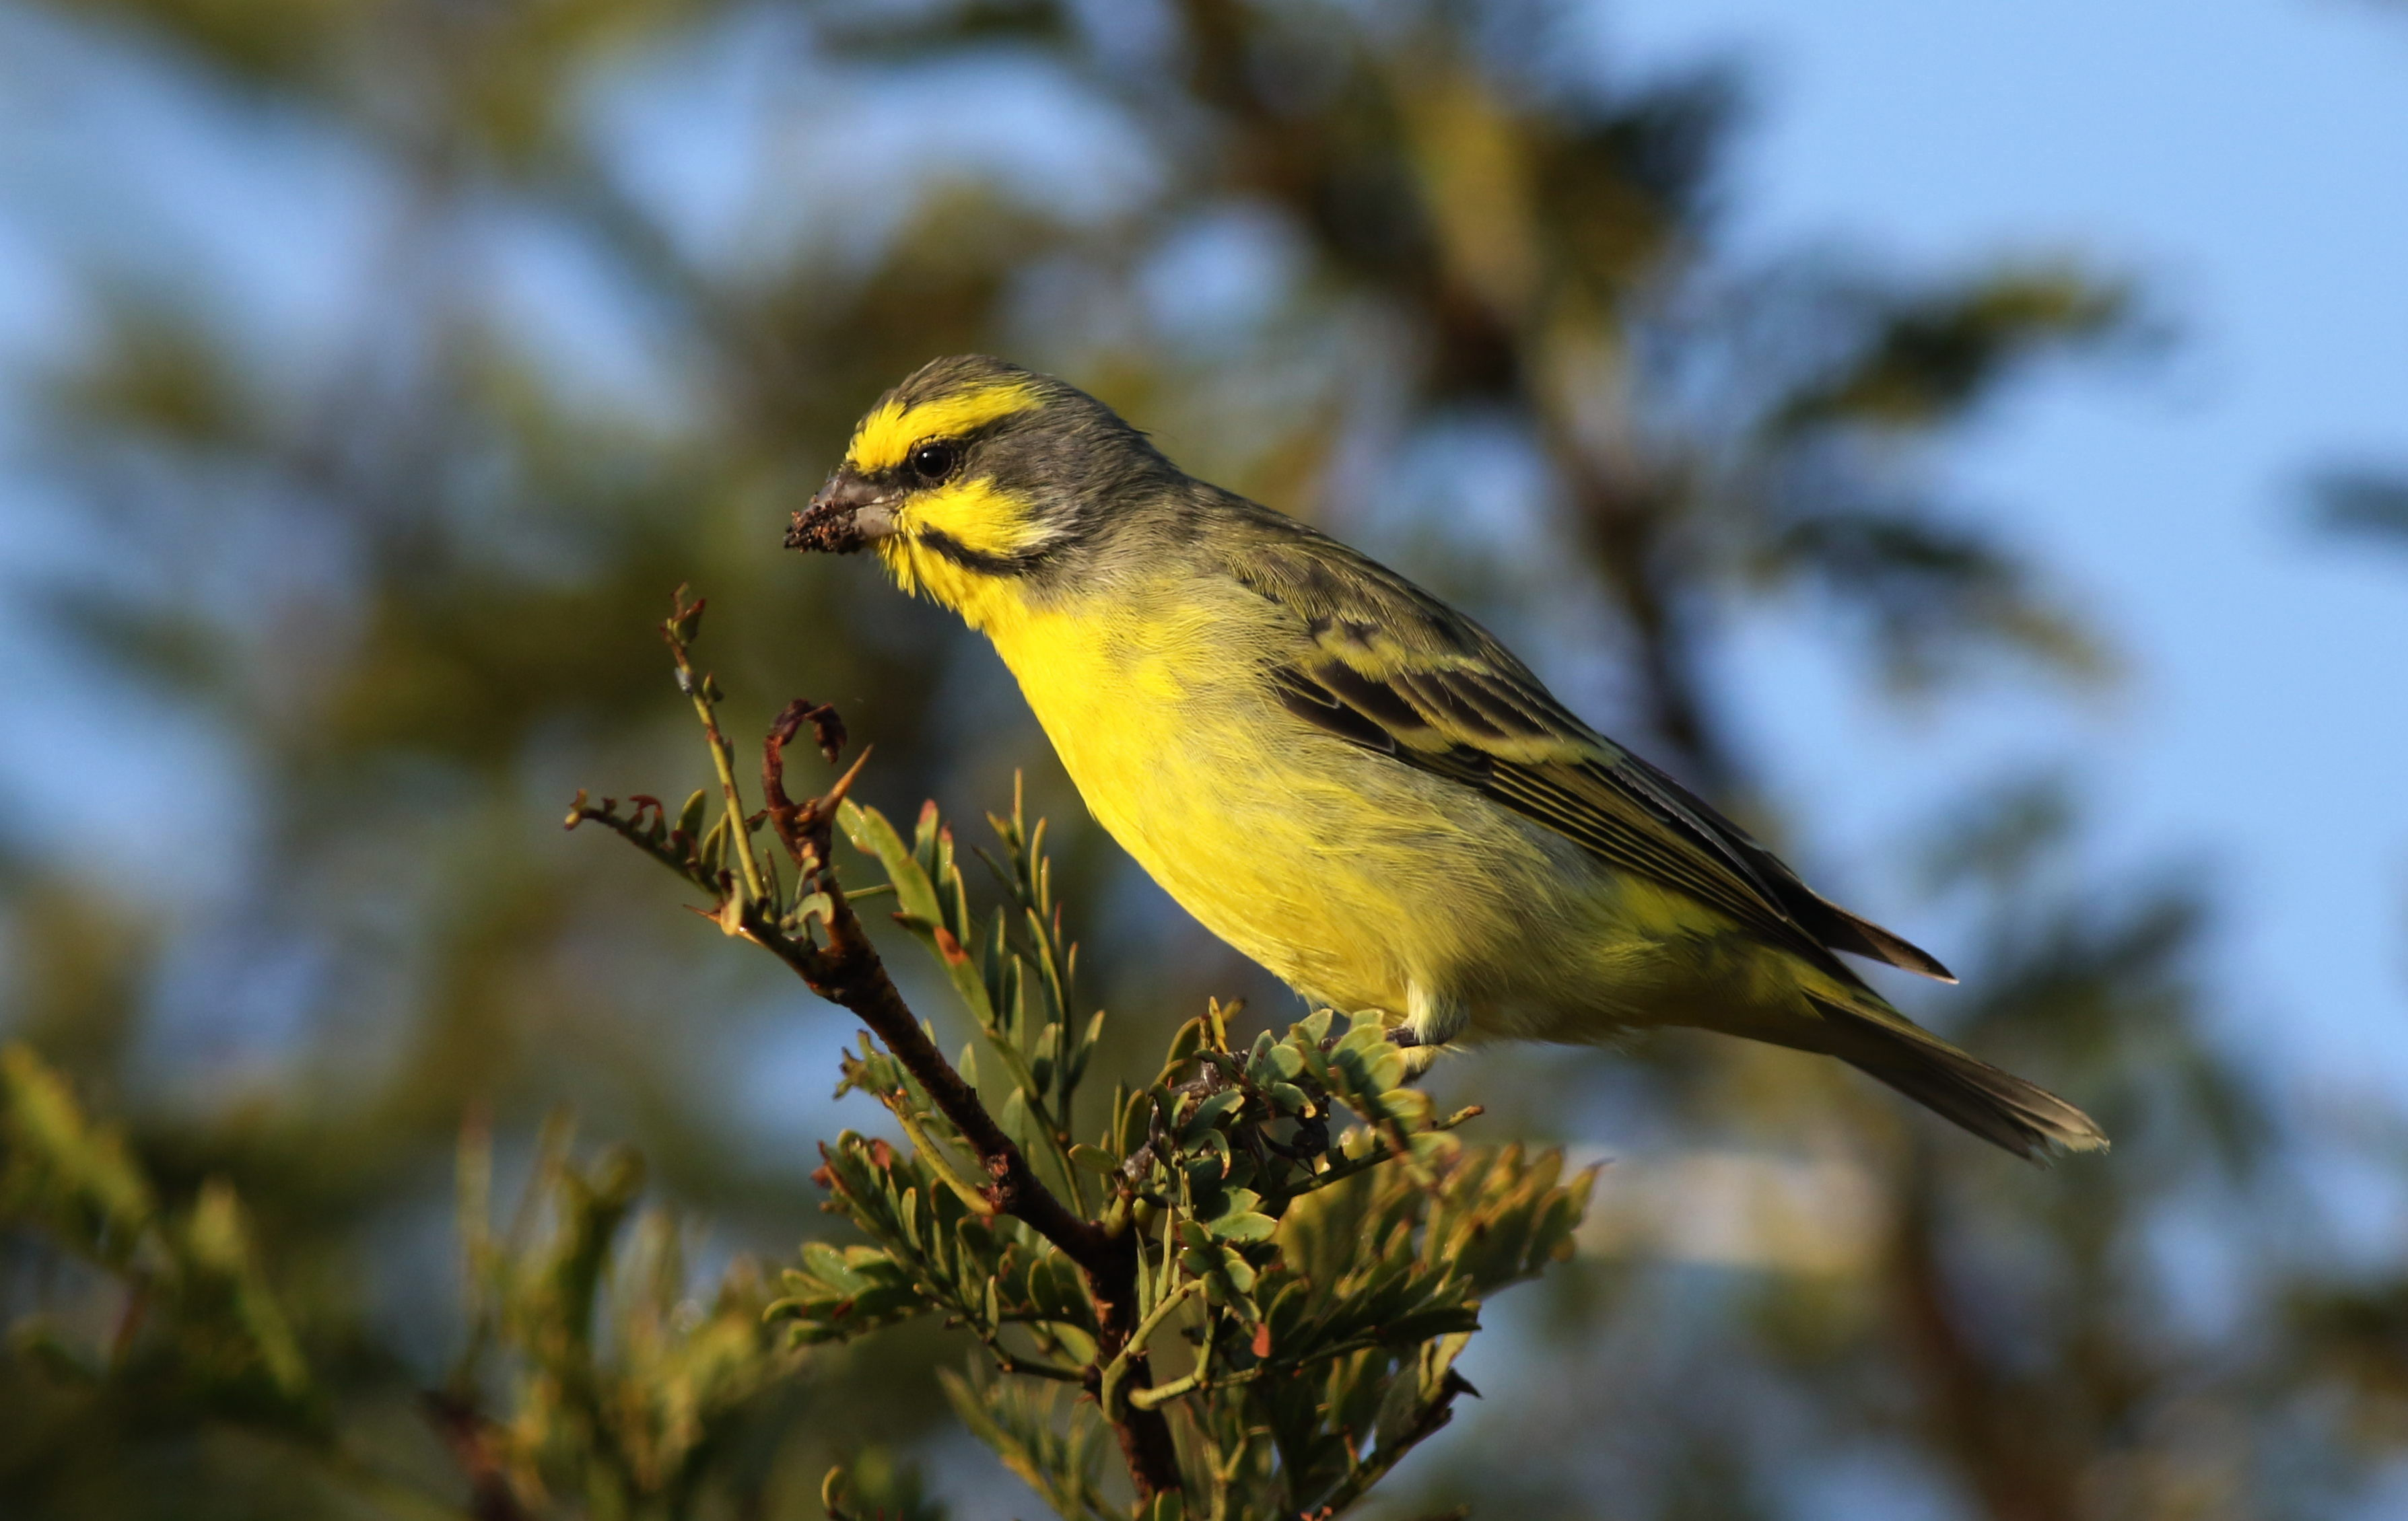 A new study shows that the trade of wild birds has dropped roughly 90 percent globally since the European Union banned the practice in 2005.